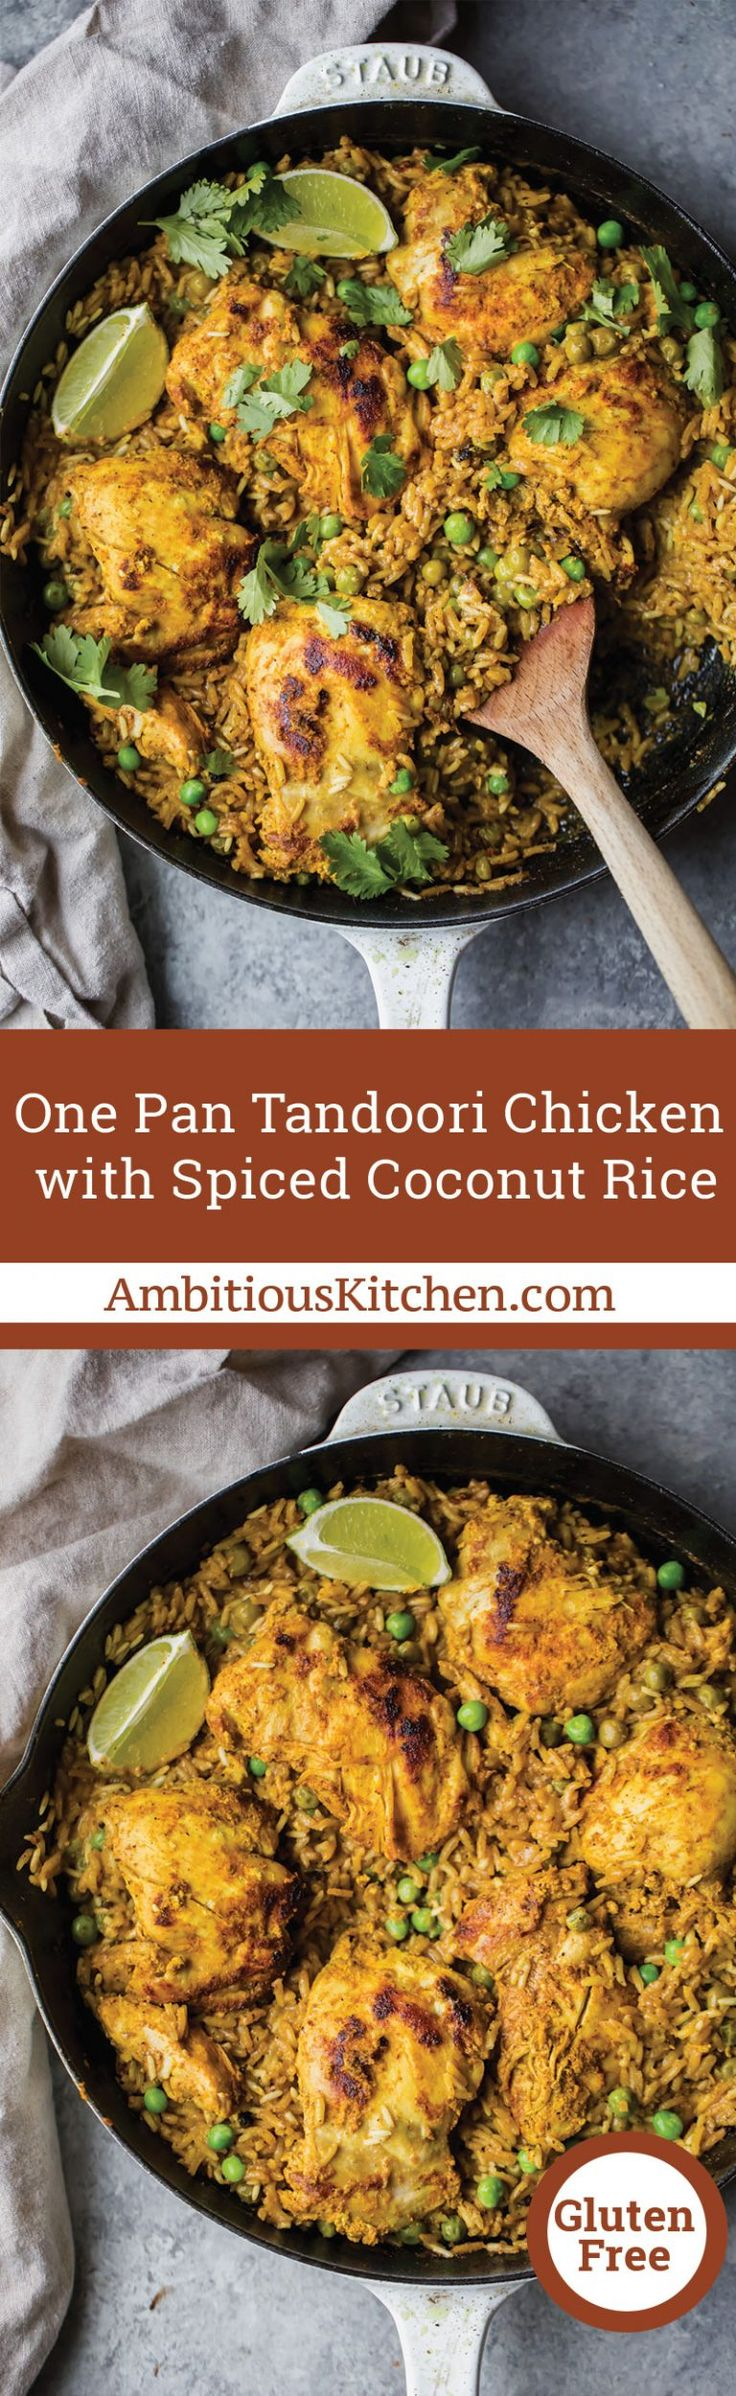 Tandoori chicken made in one pan with a savory spiced yellow coconut rice. This global flavored recipe is perfect for meal prepping or serving for a weeknight dinner!